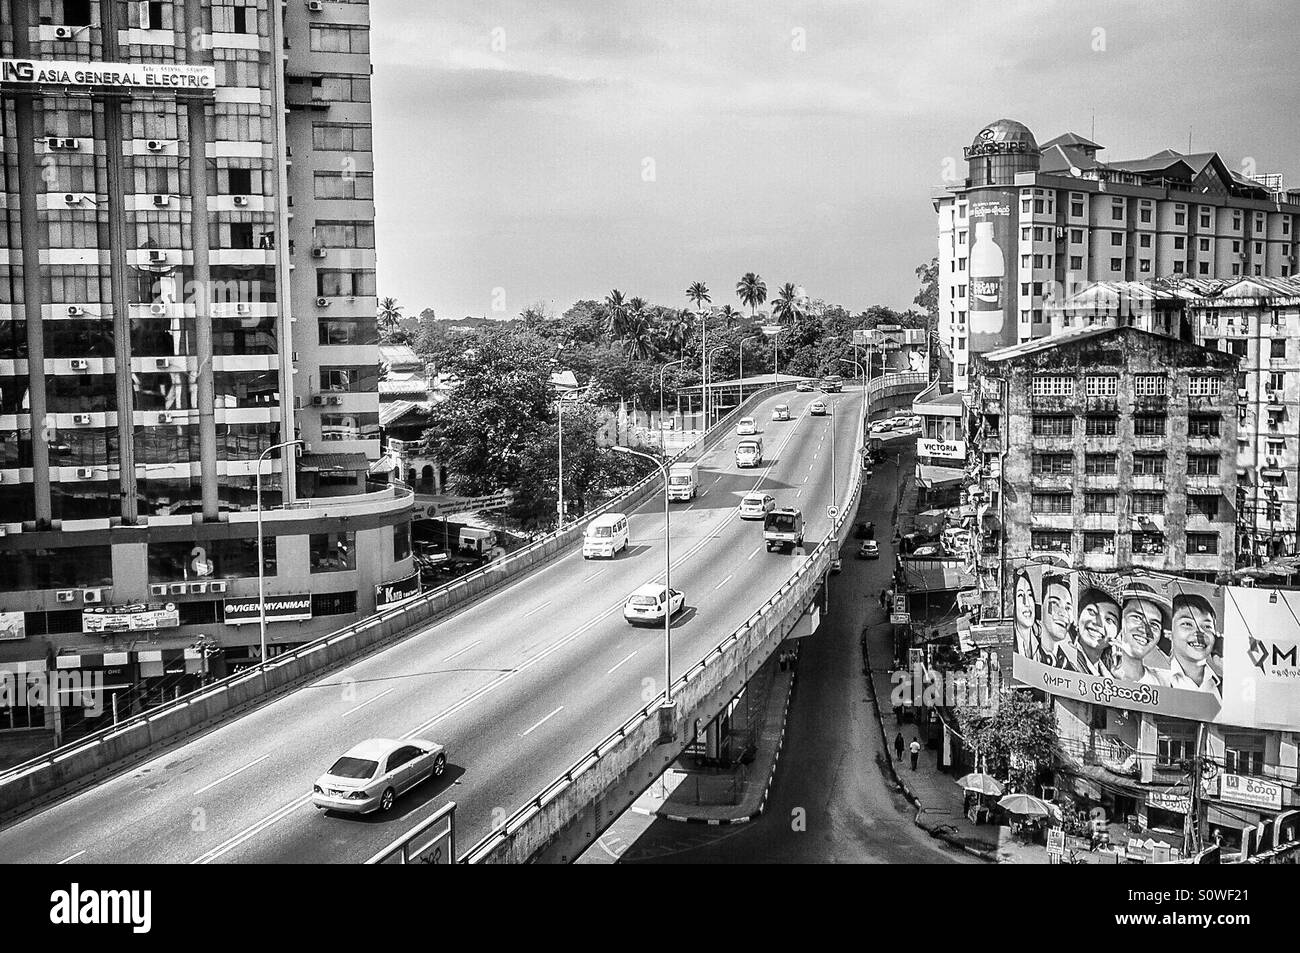 Downtown Yangon, Myanmar - Stock Image